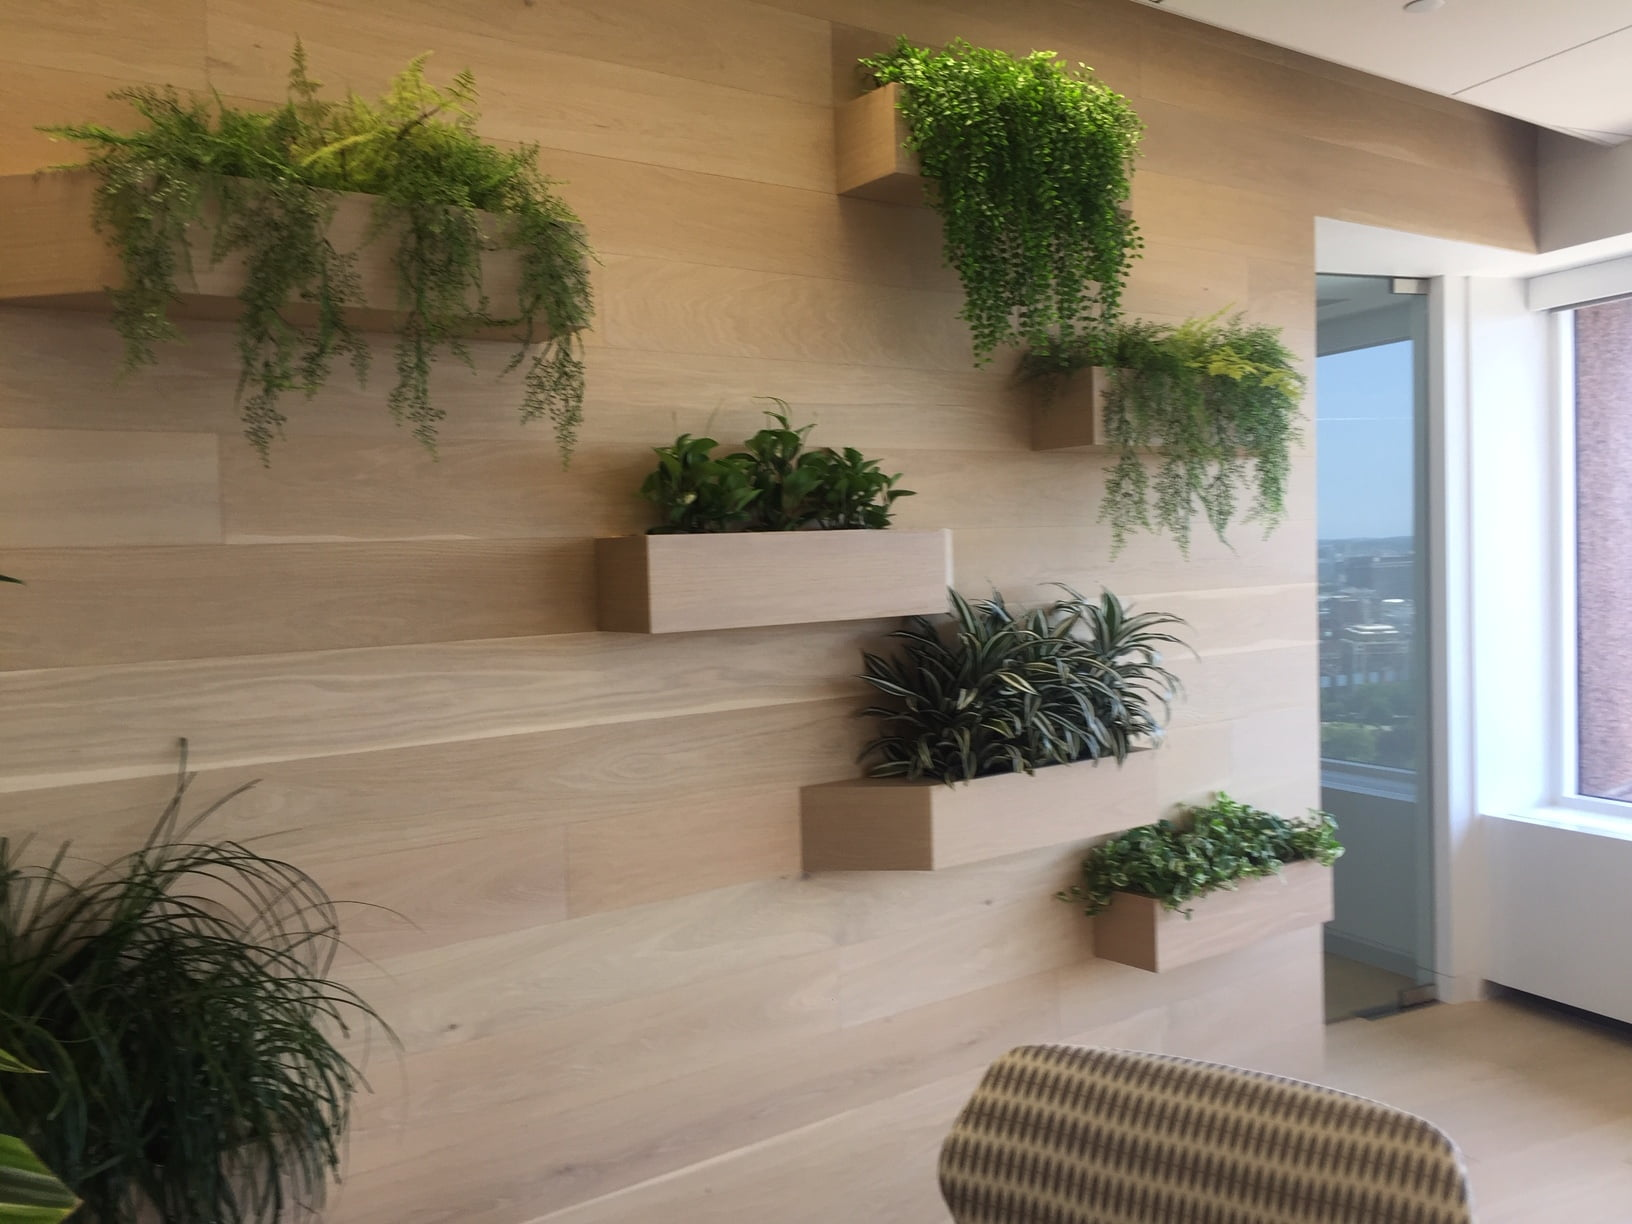 Social Distancing Barriers using Interior office Plants & Planters